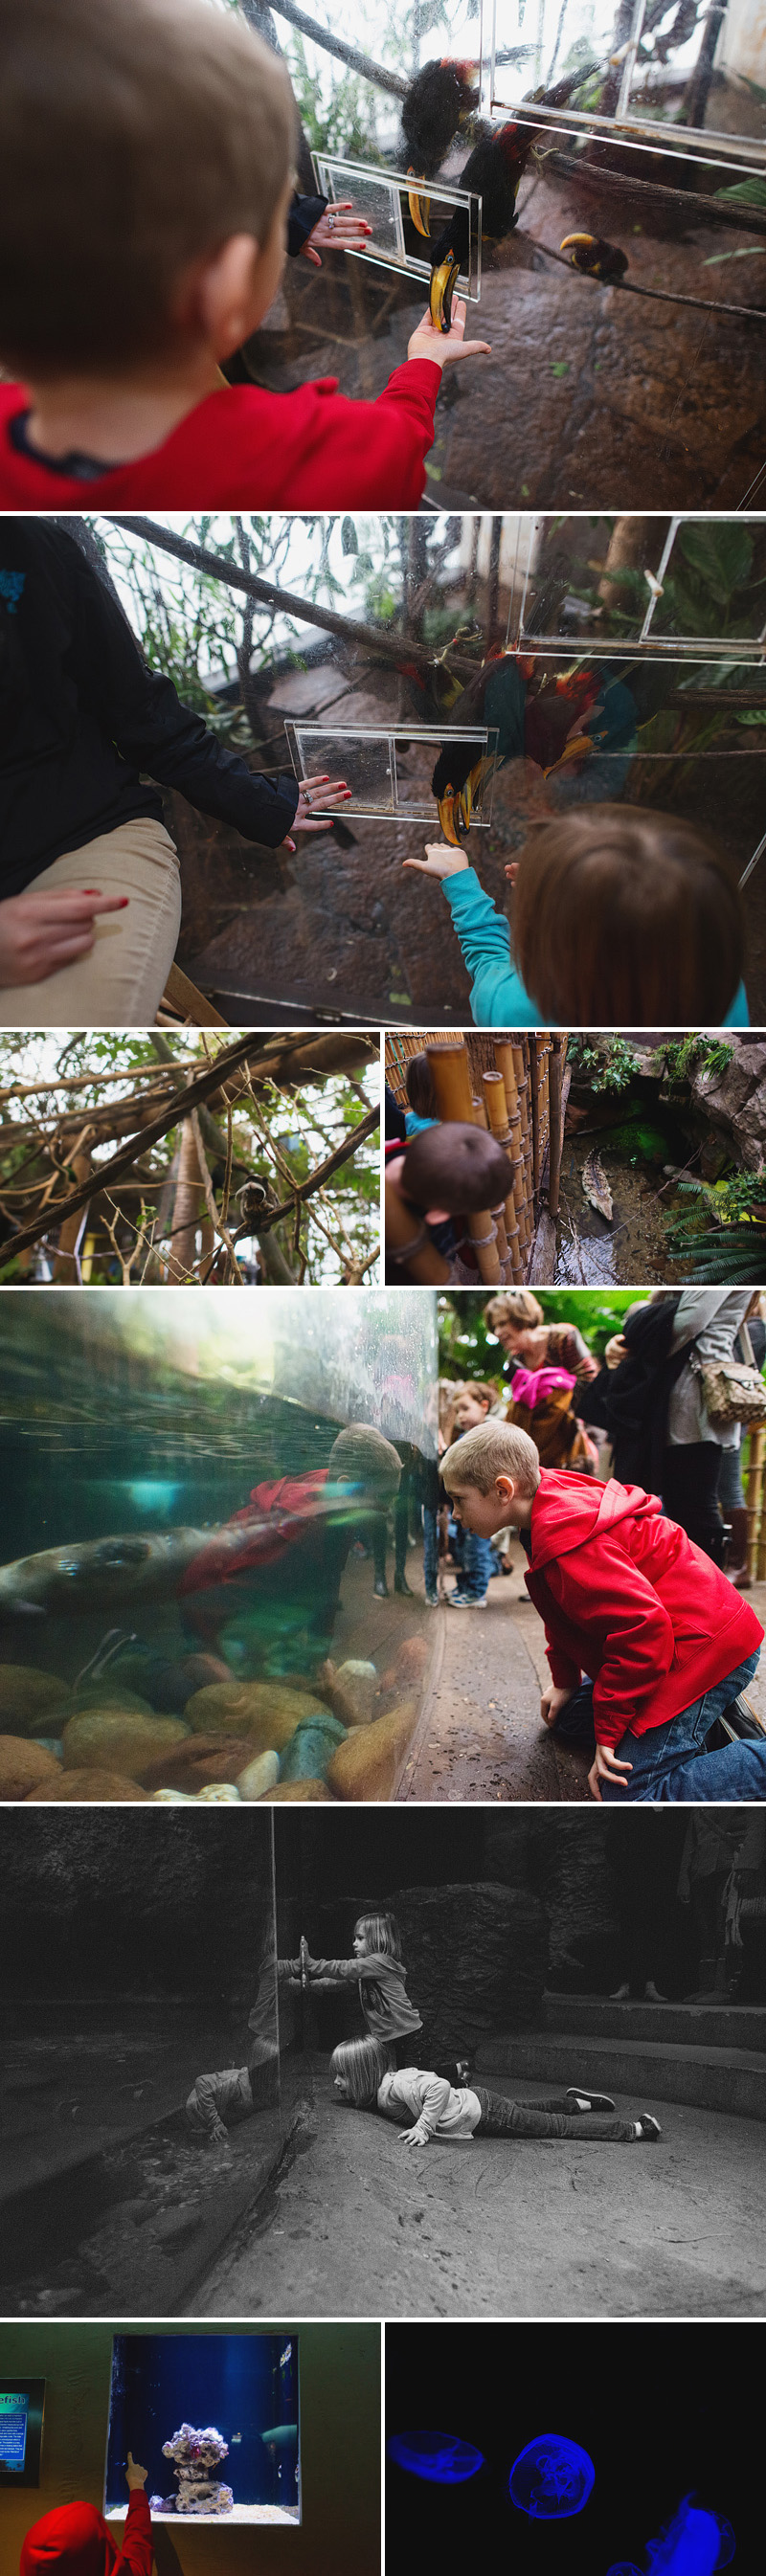 dallas world aquarium things to do with kids in dallas